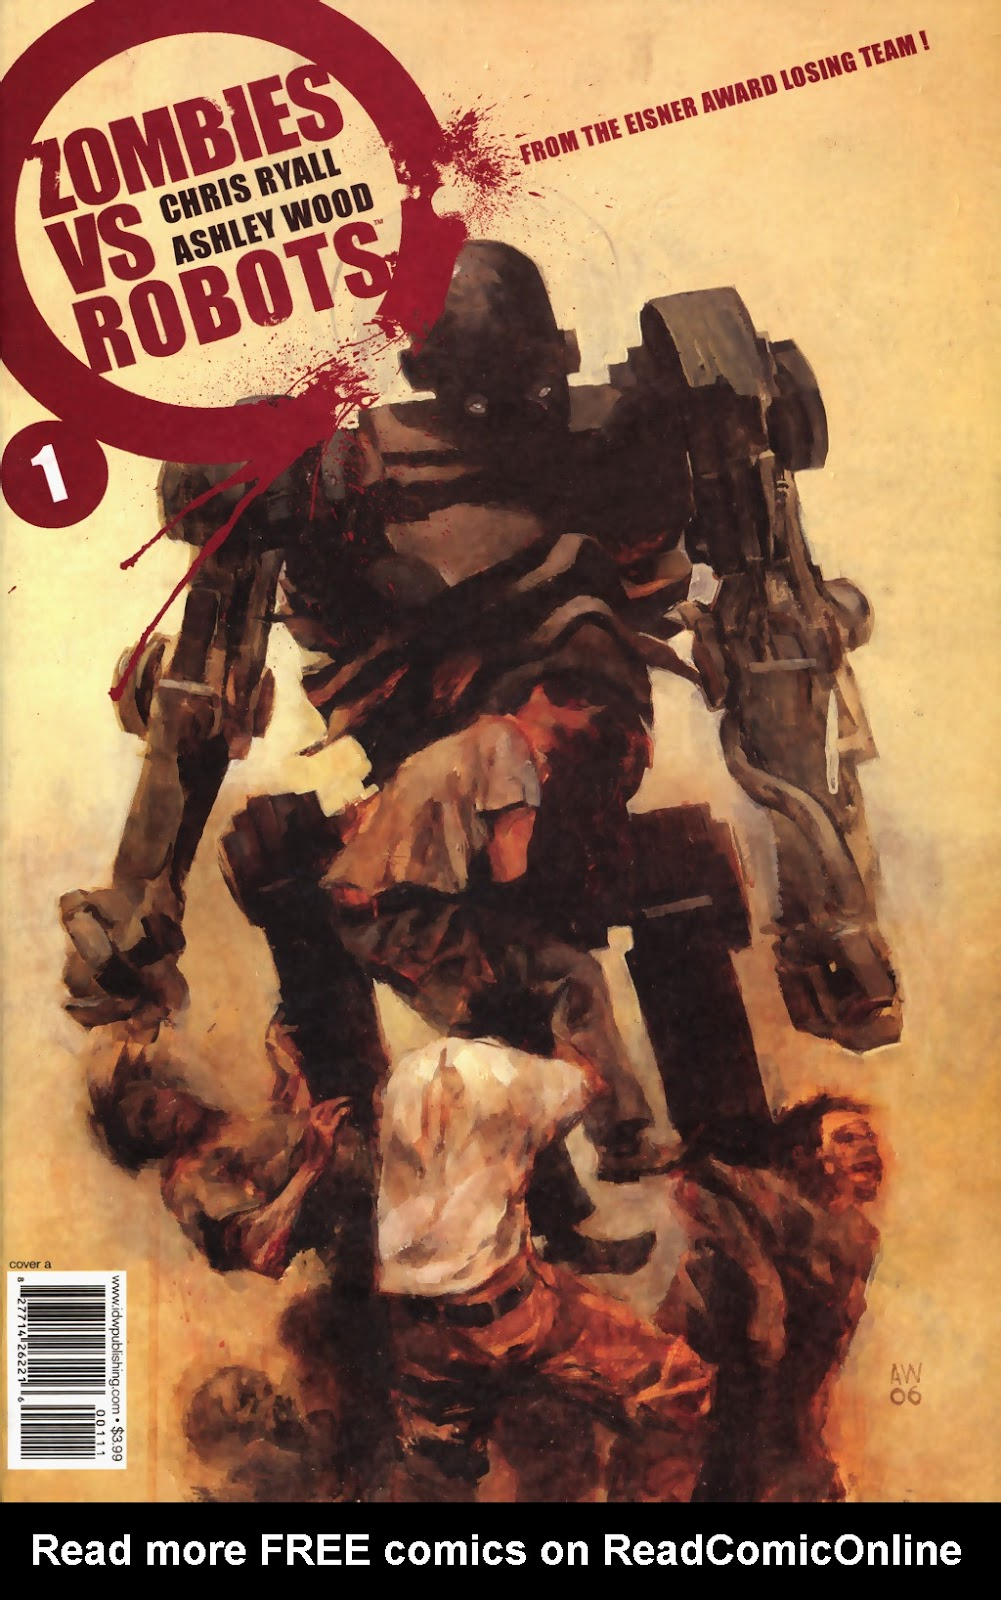 Zombies vs. Robots (2006) Issue #1 Page 1